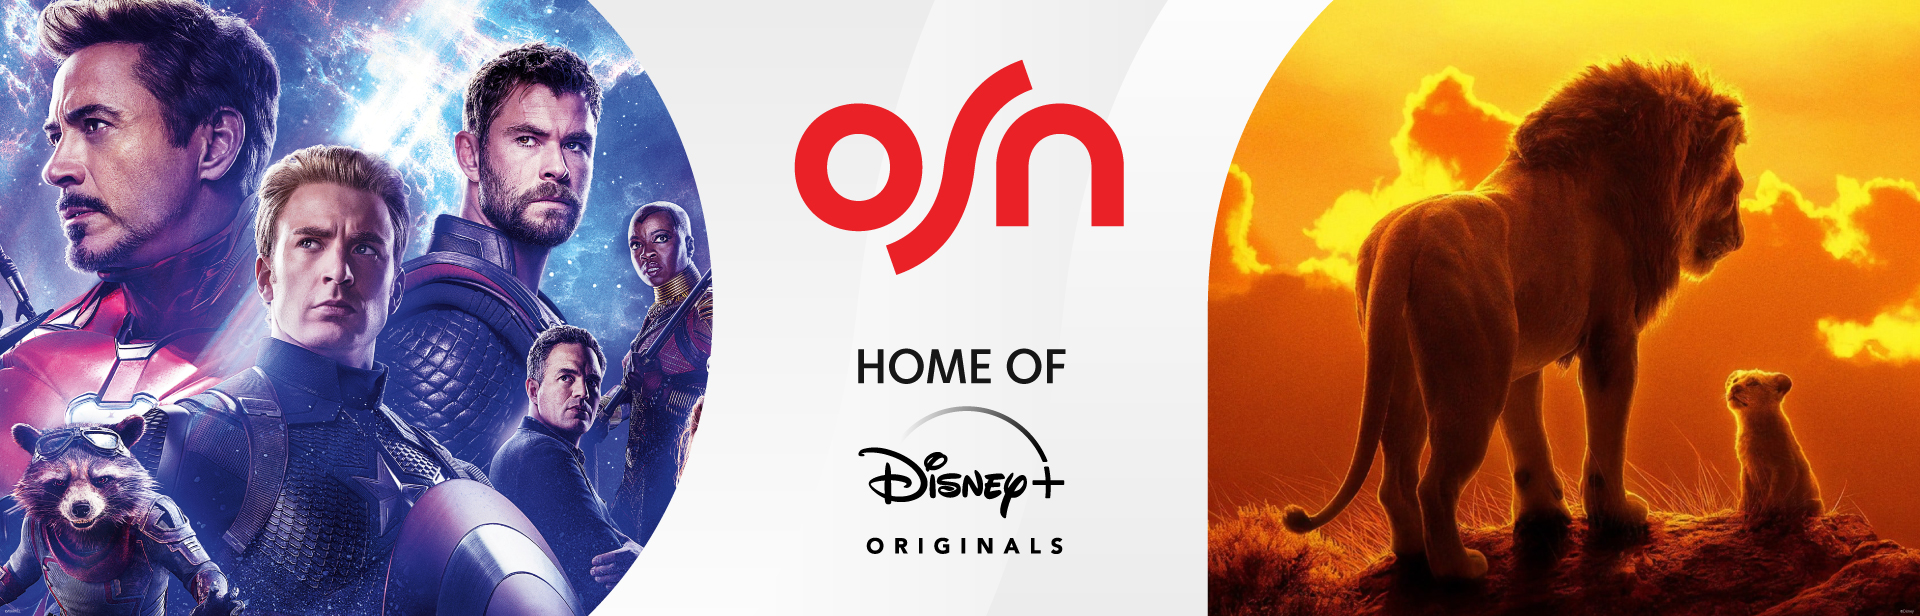 Watch Disney+ Movies and Shows on OSN